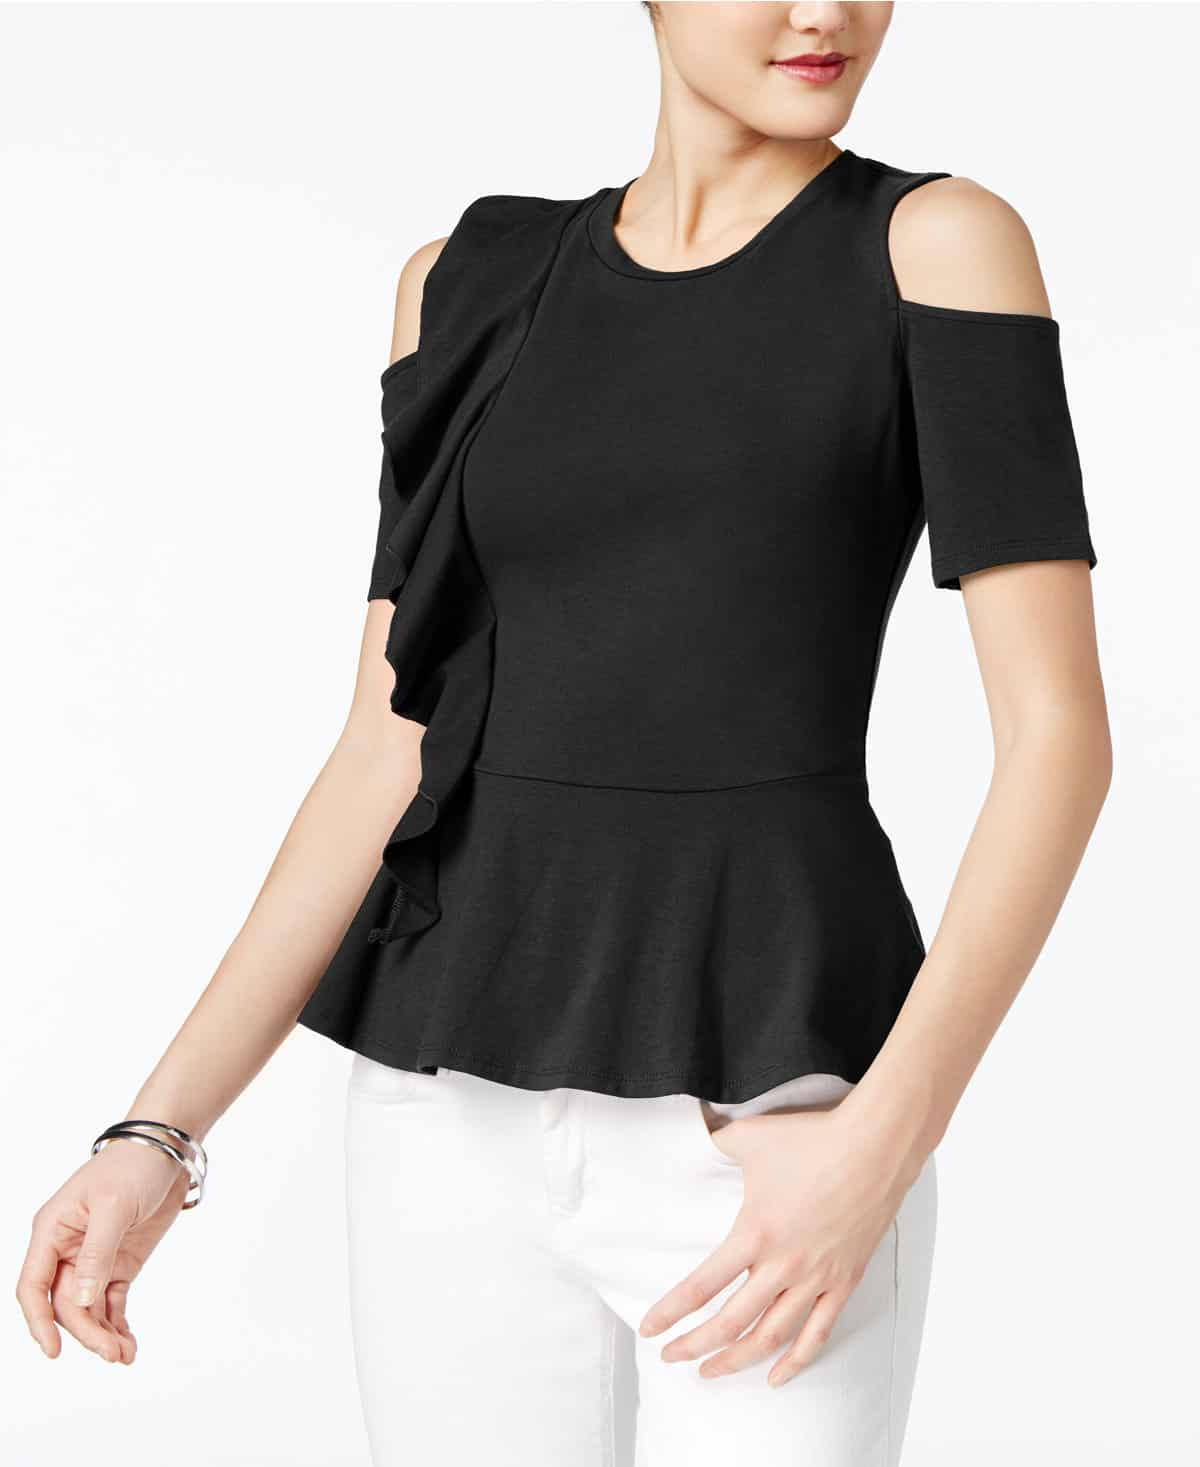 noon by noor look for less - peplum top